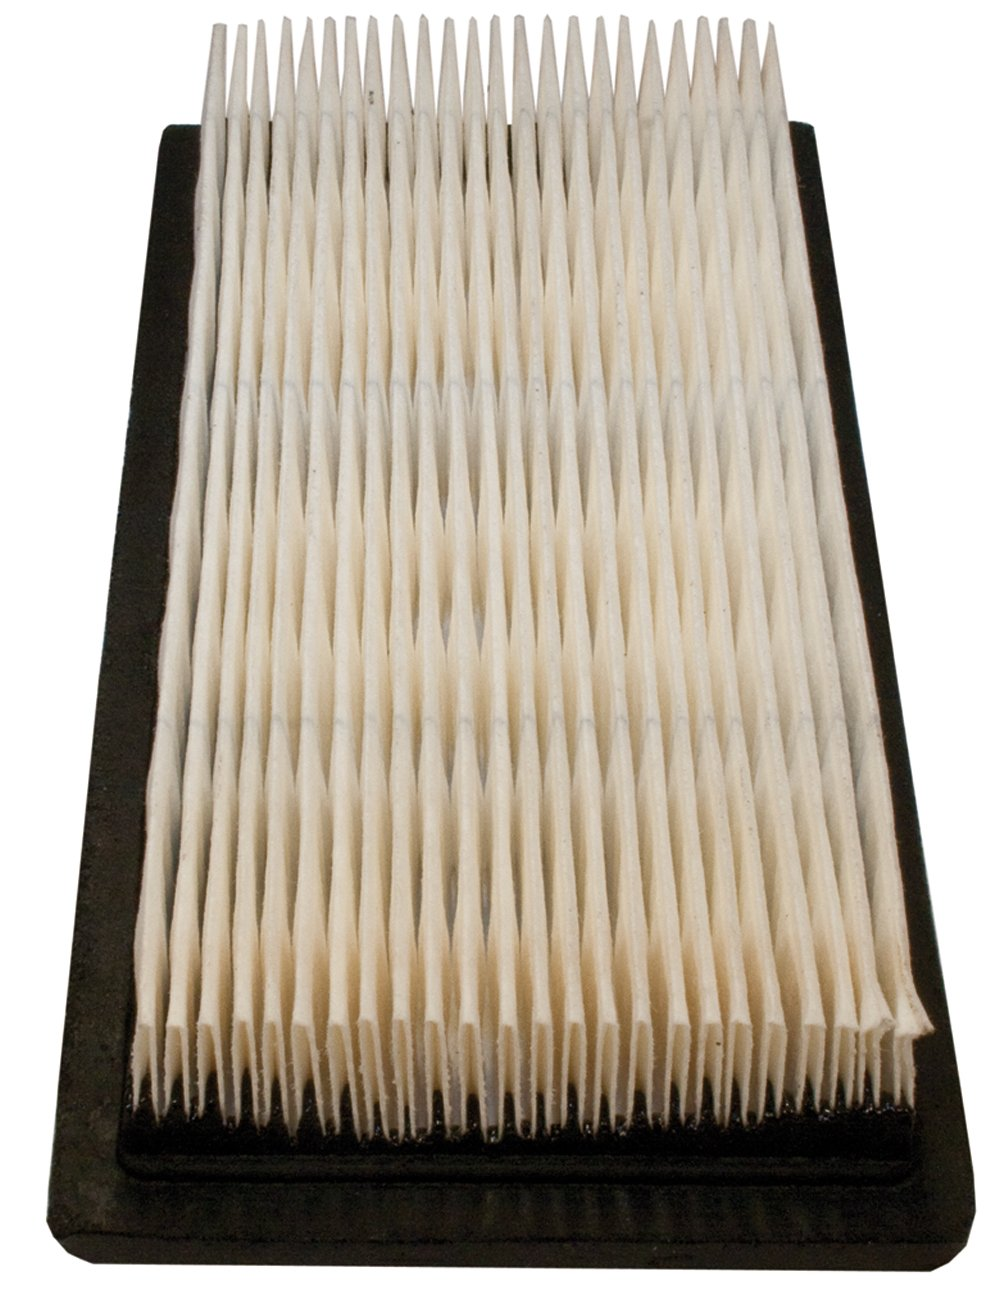 Stens 102-024 Briggs and Stratton 494511S Air Filter